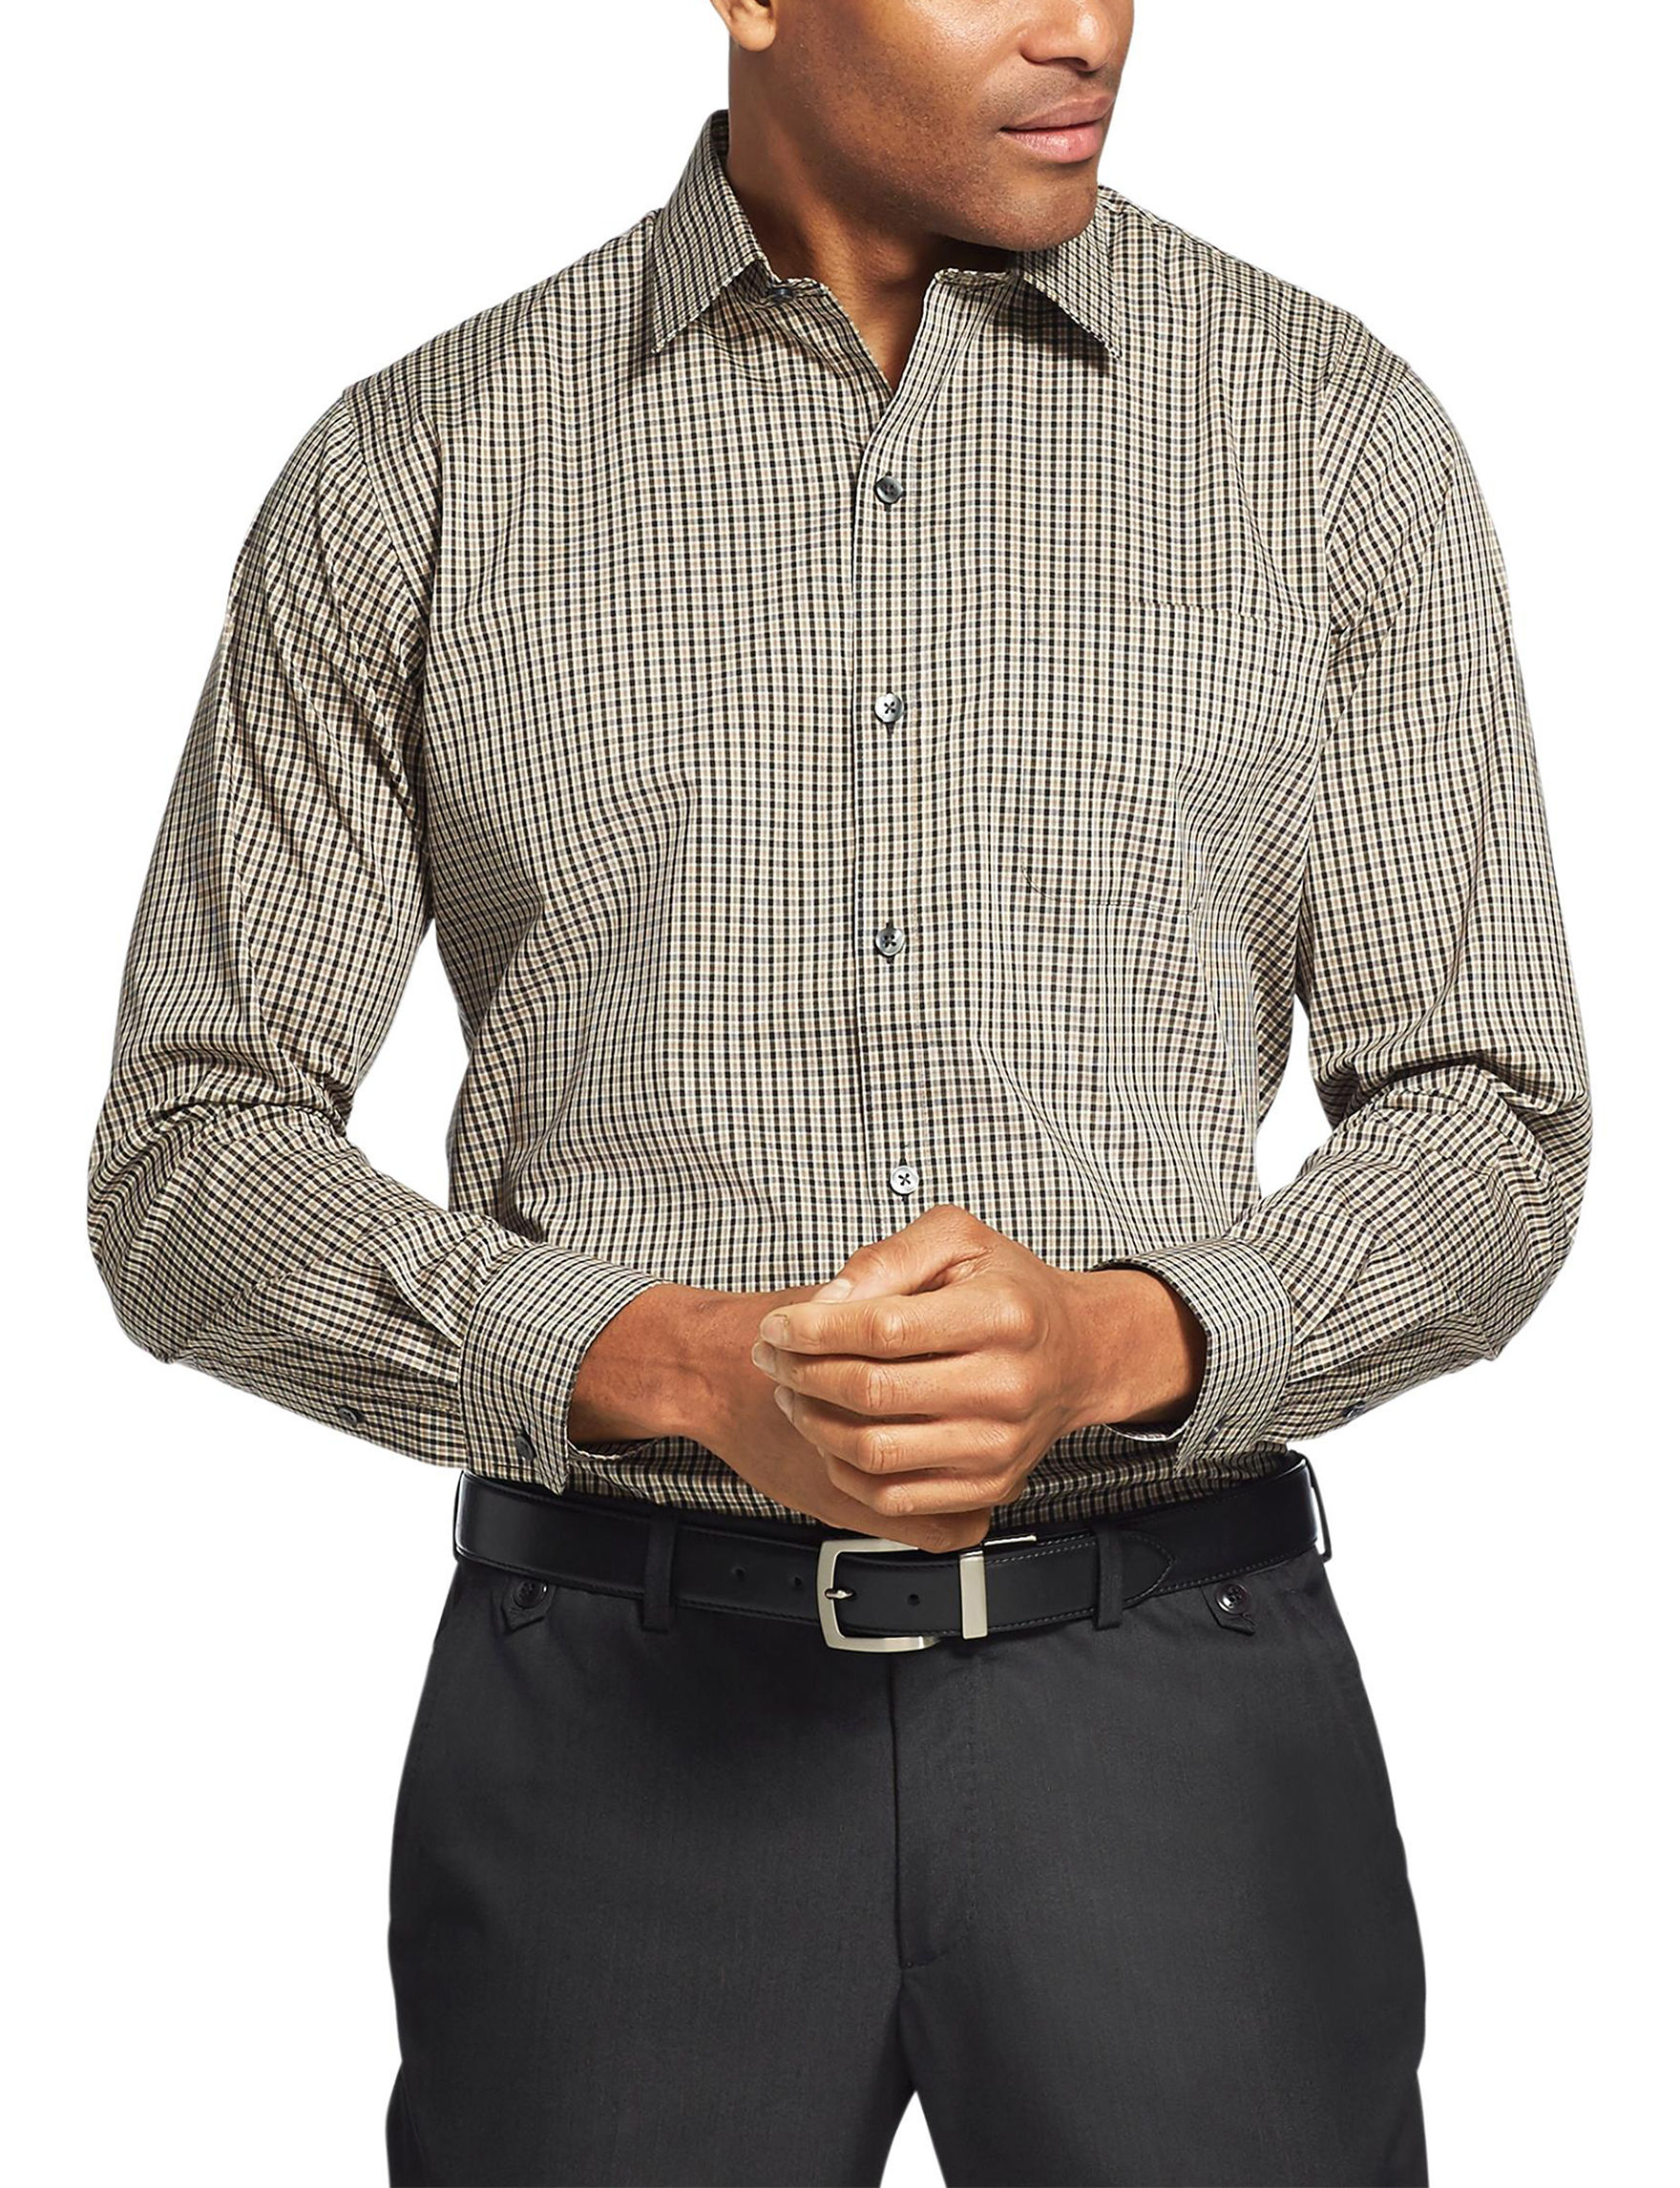 Van Heusen Beige Plaid Casual Button Down Shirts